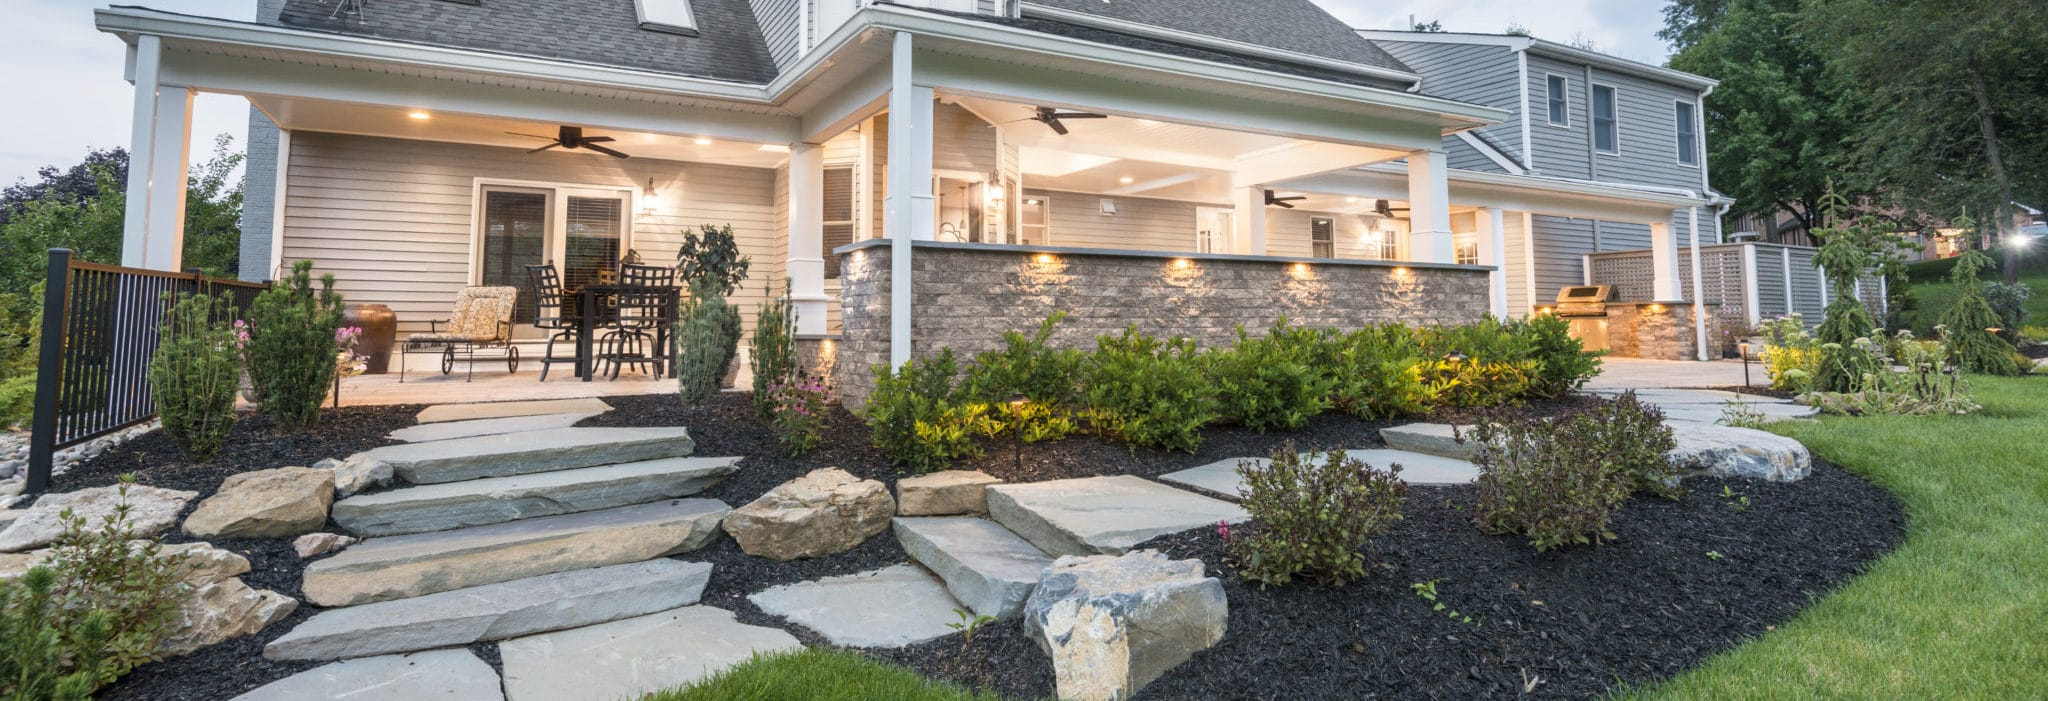 Chestnut hill landscape contractors covered patio